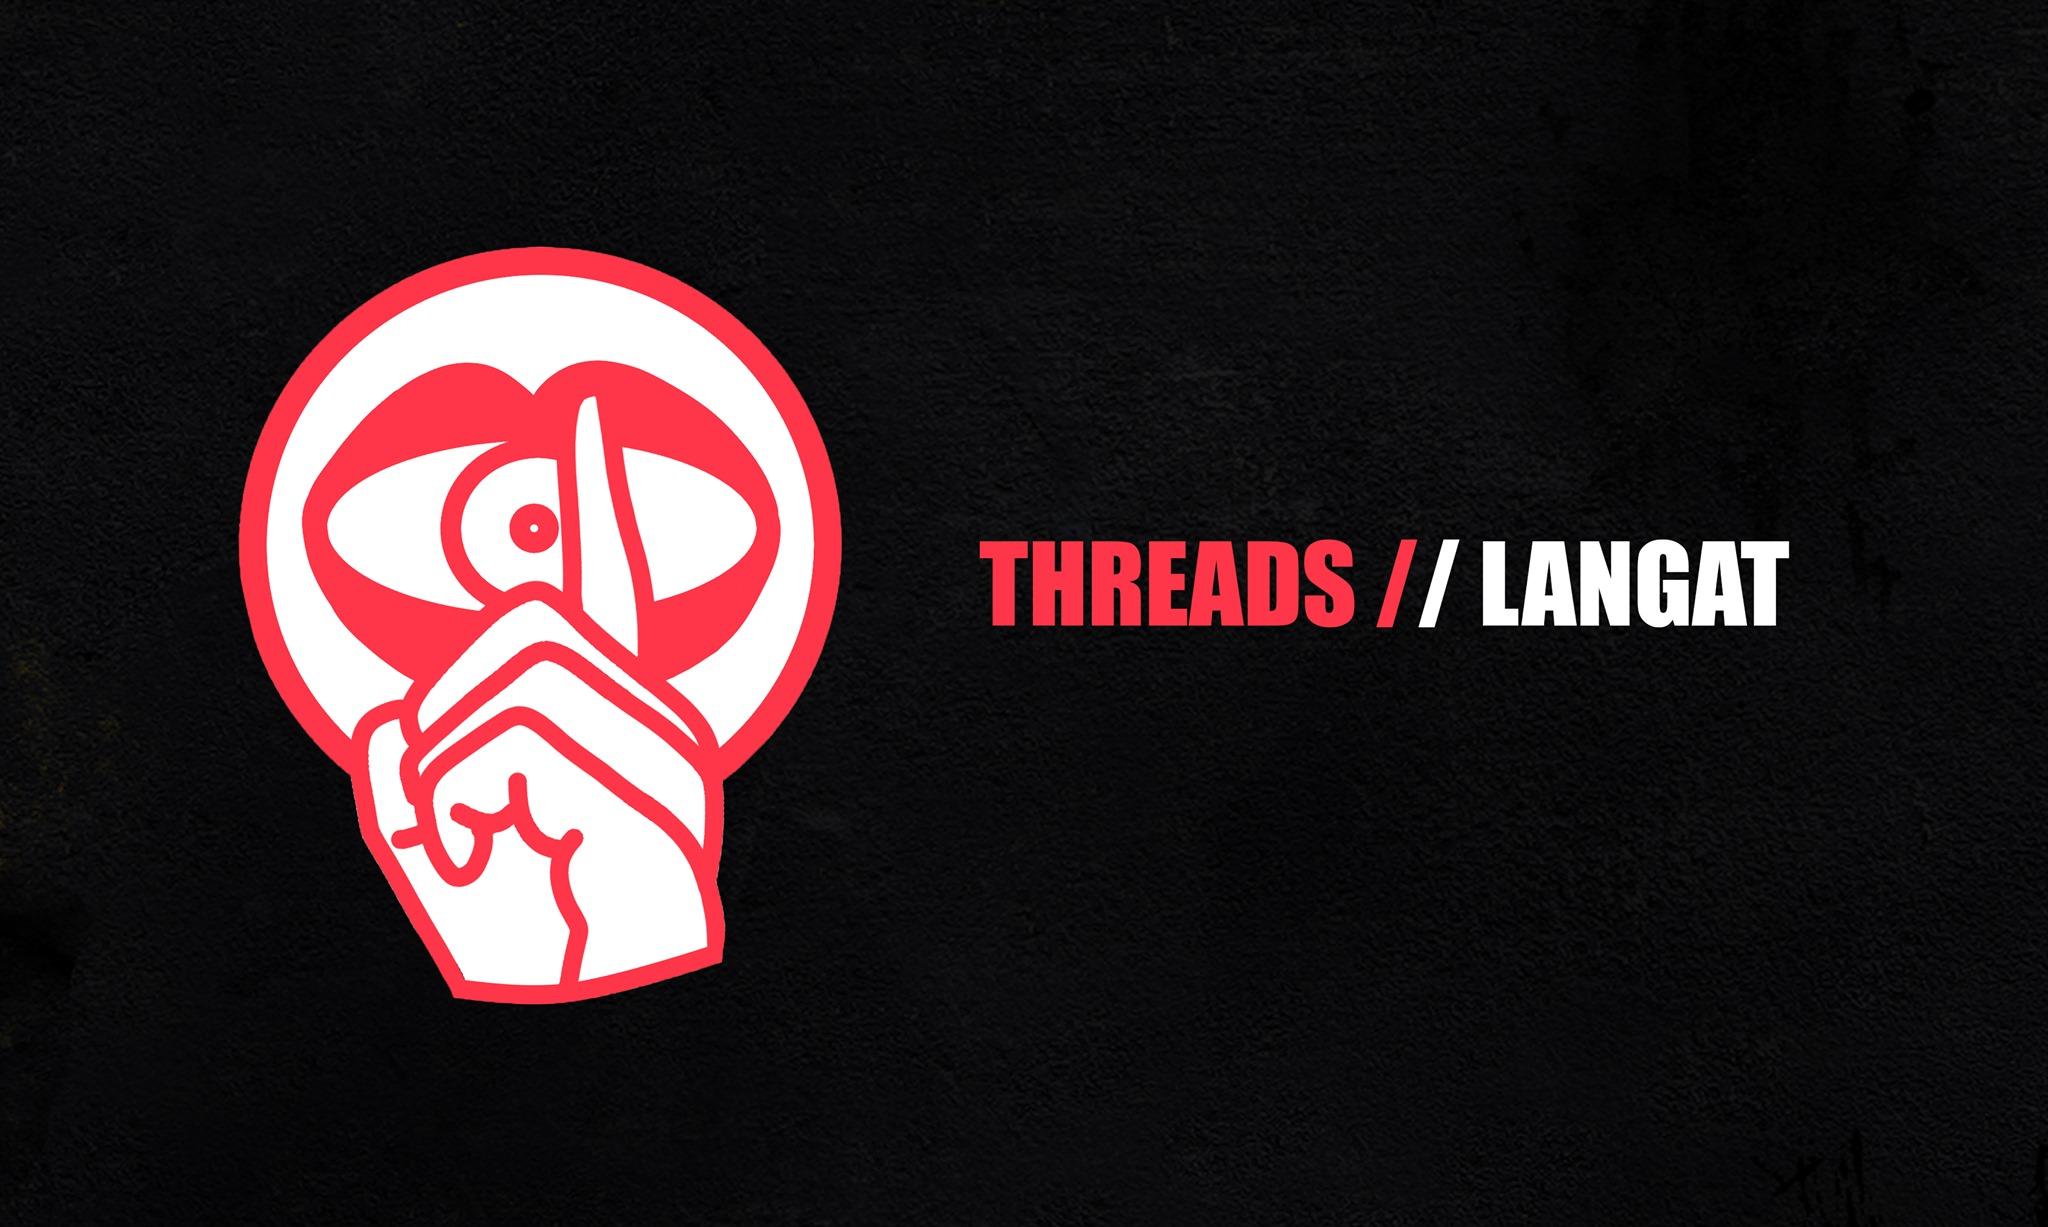 Threads//Langat